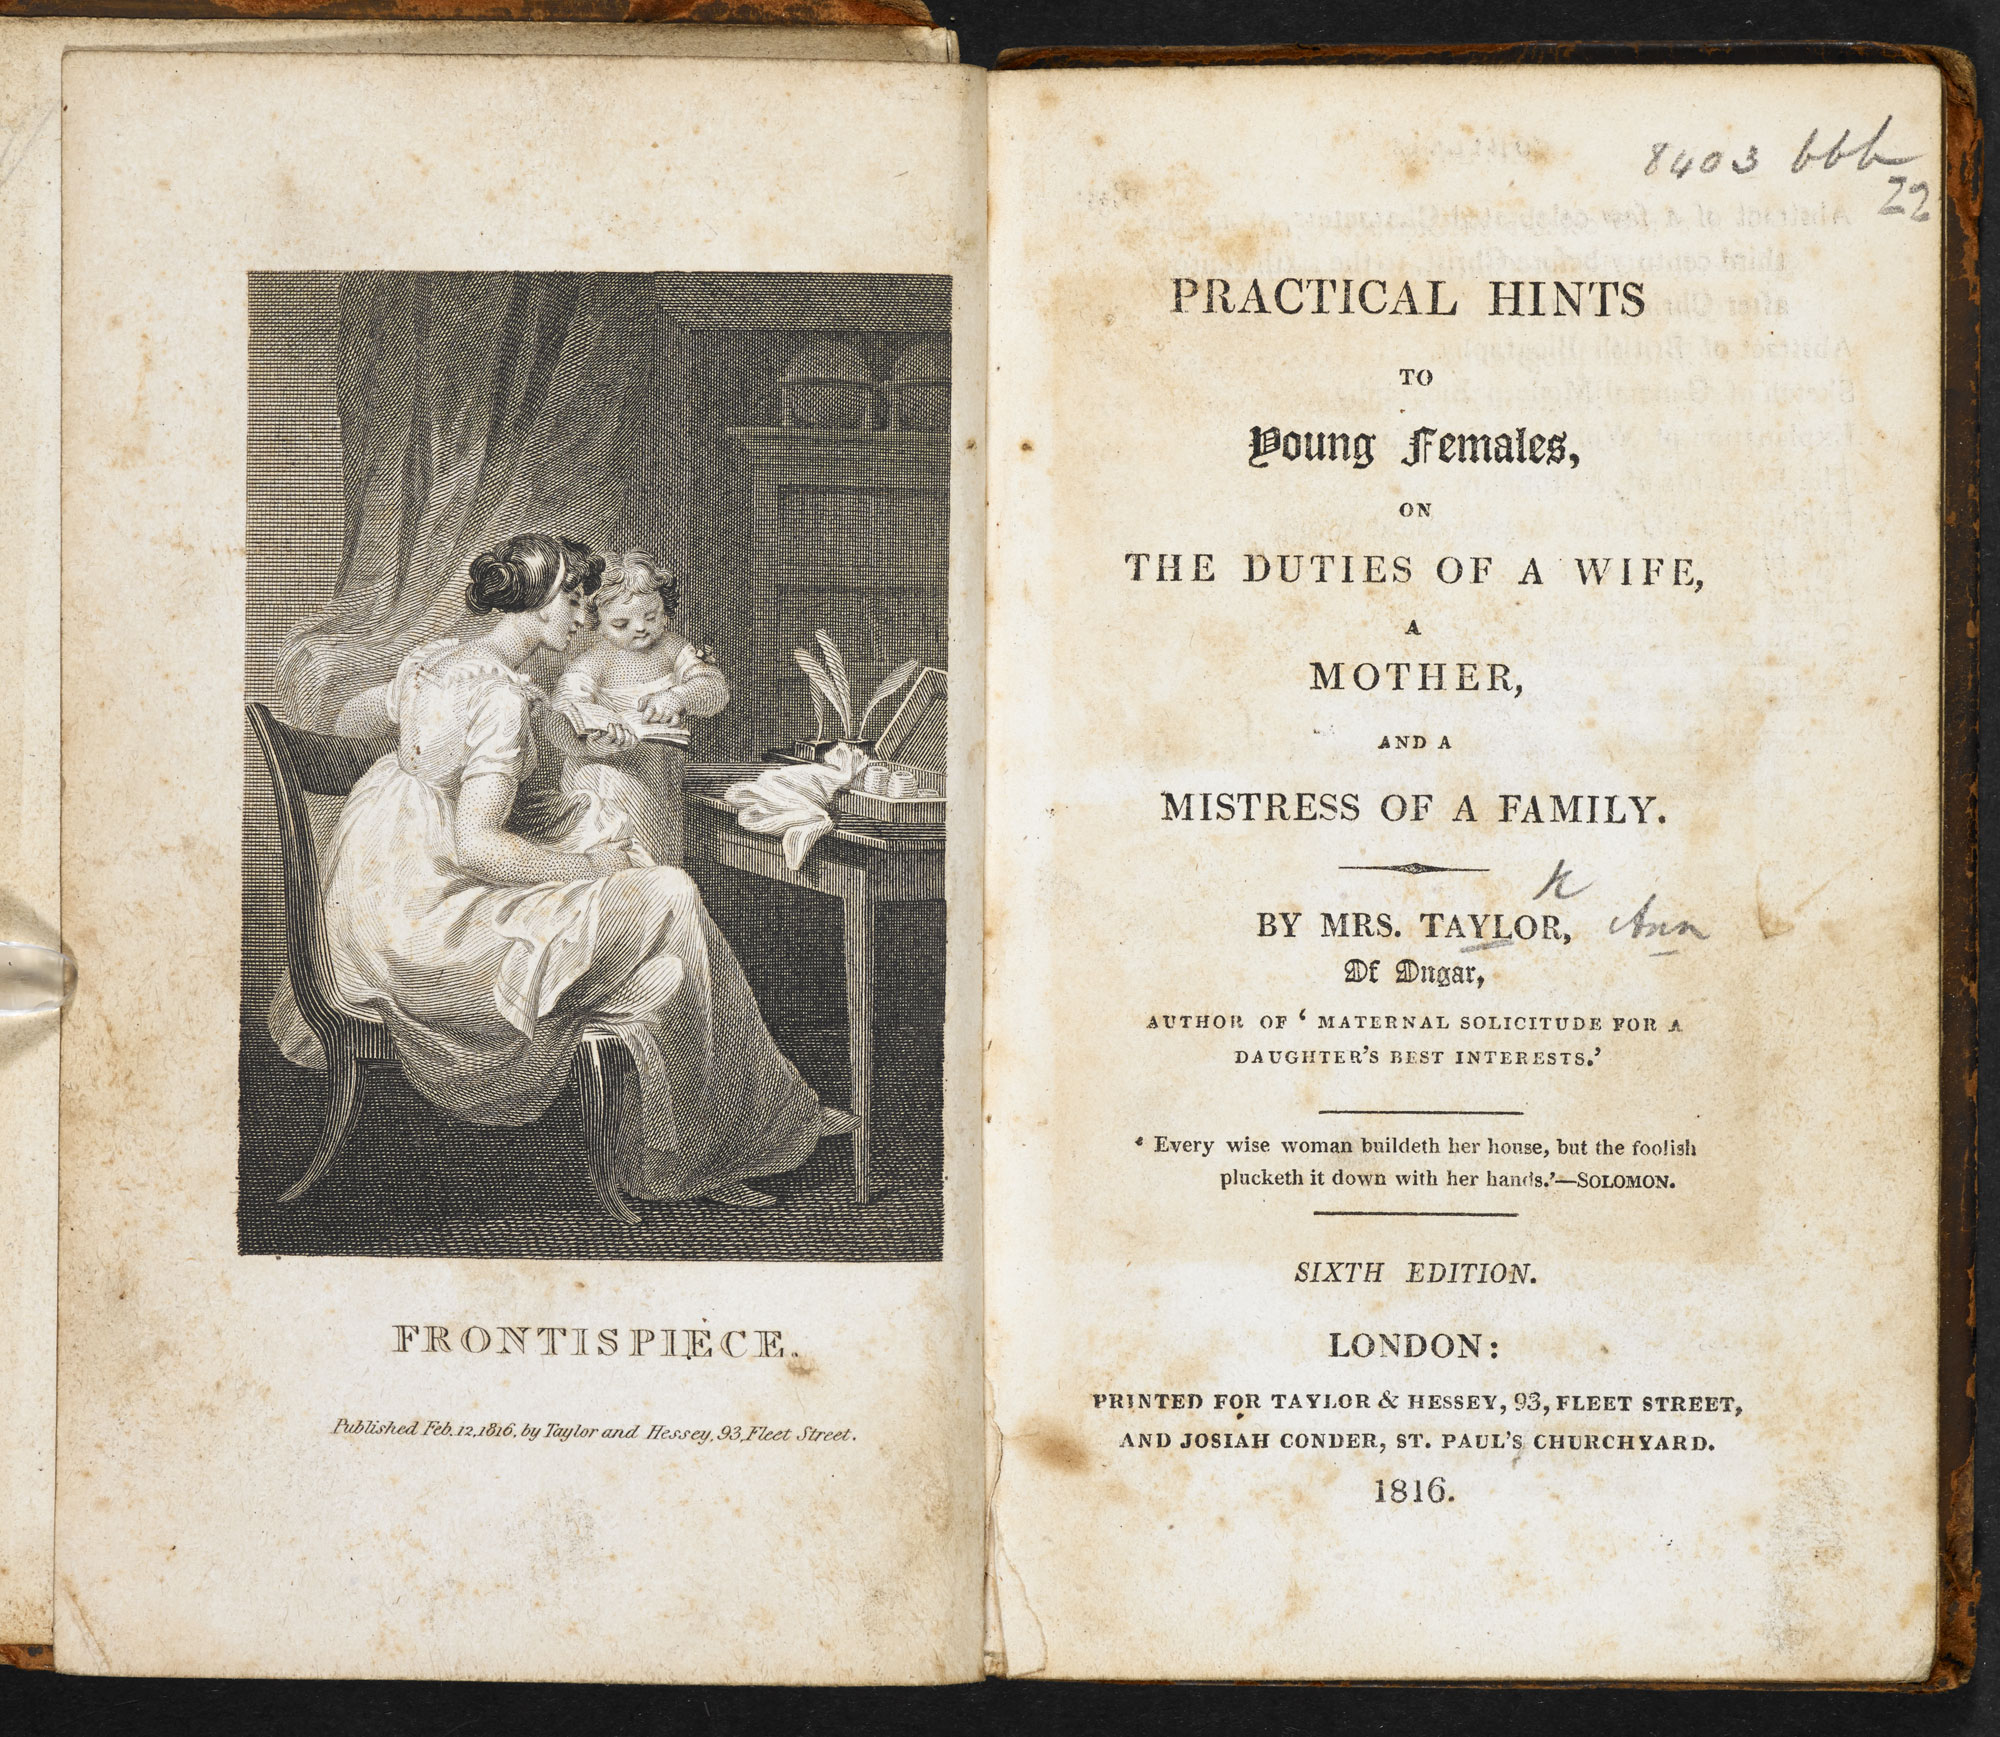 Practical hints to young females [page: frontispiece and title page]